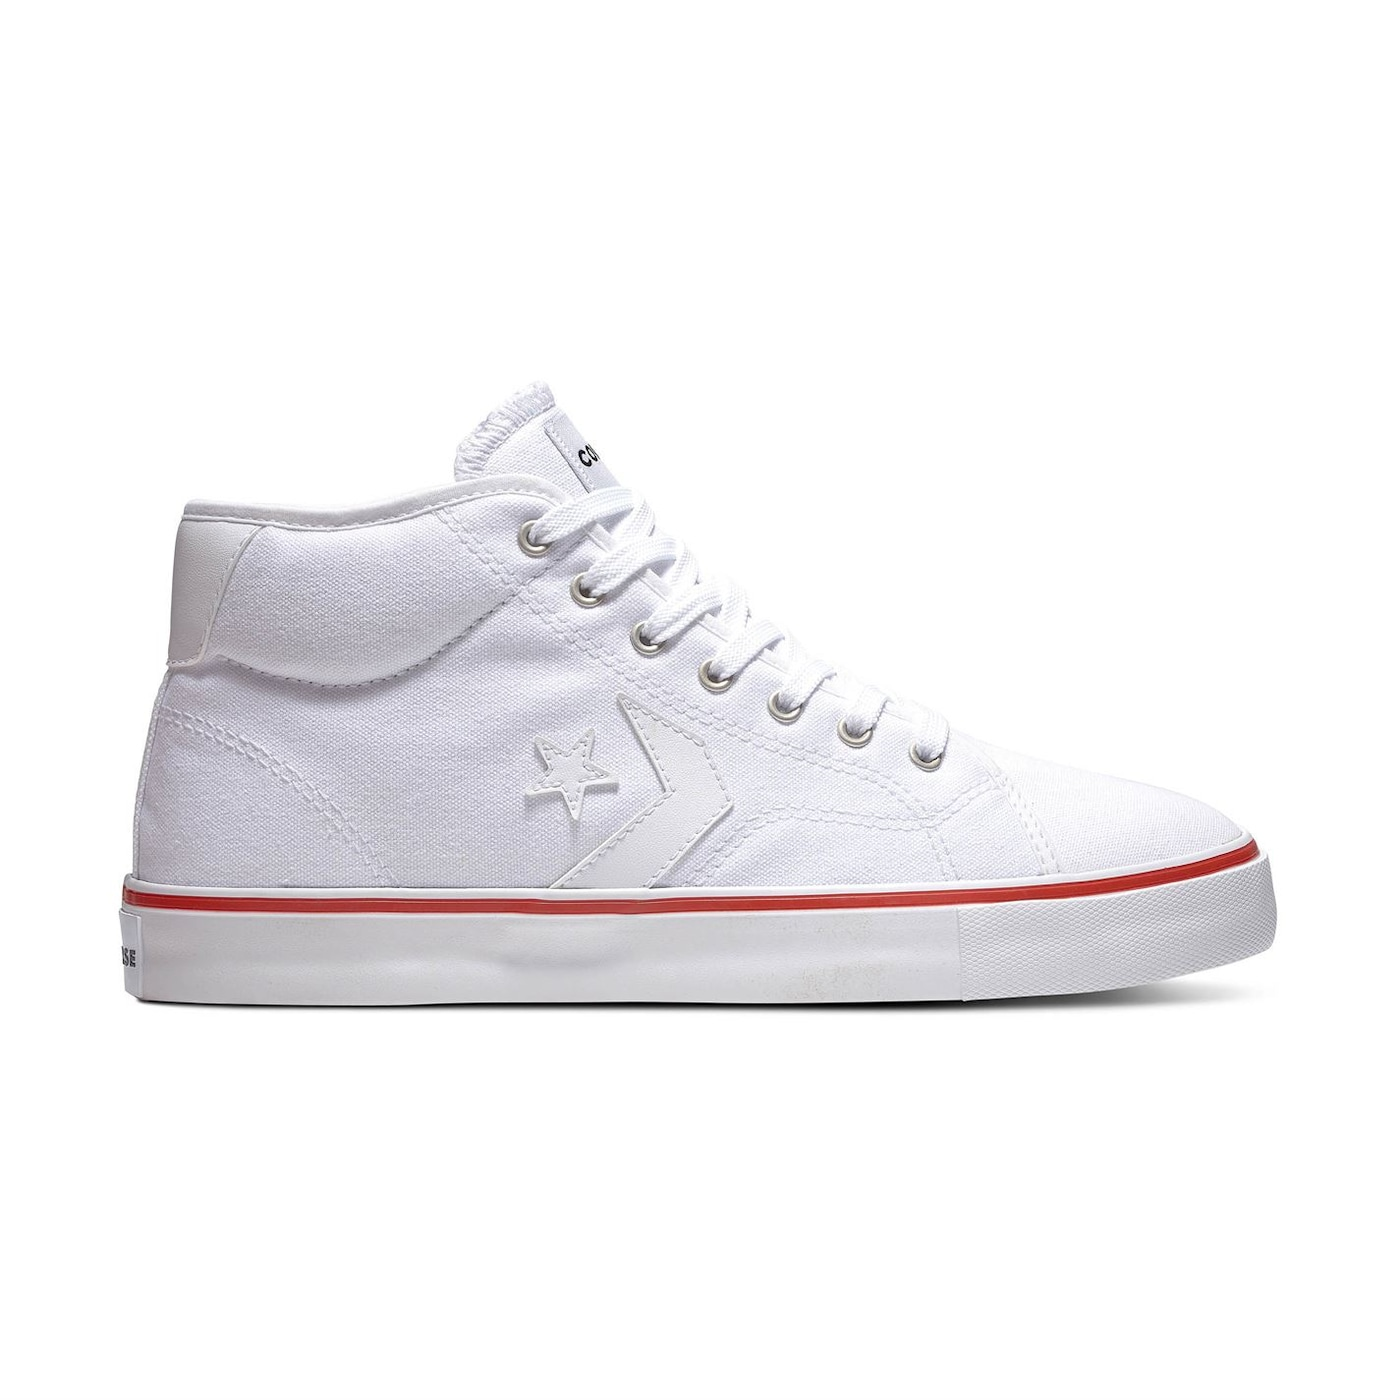 Converse Top Replay Trainers